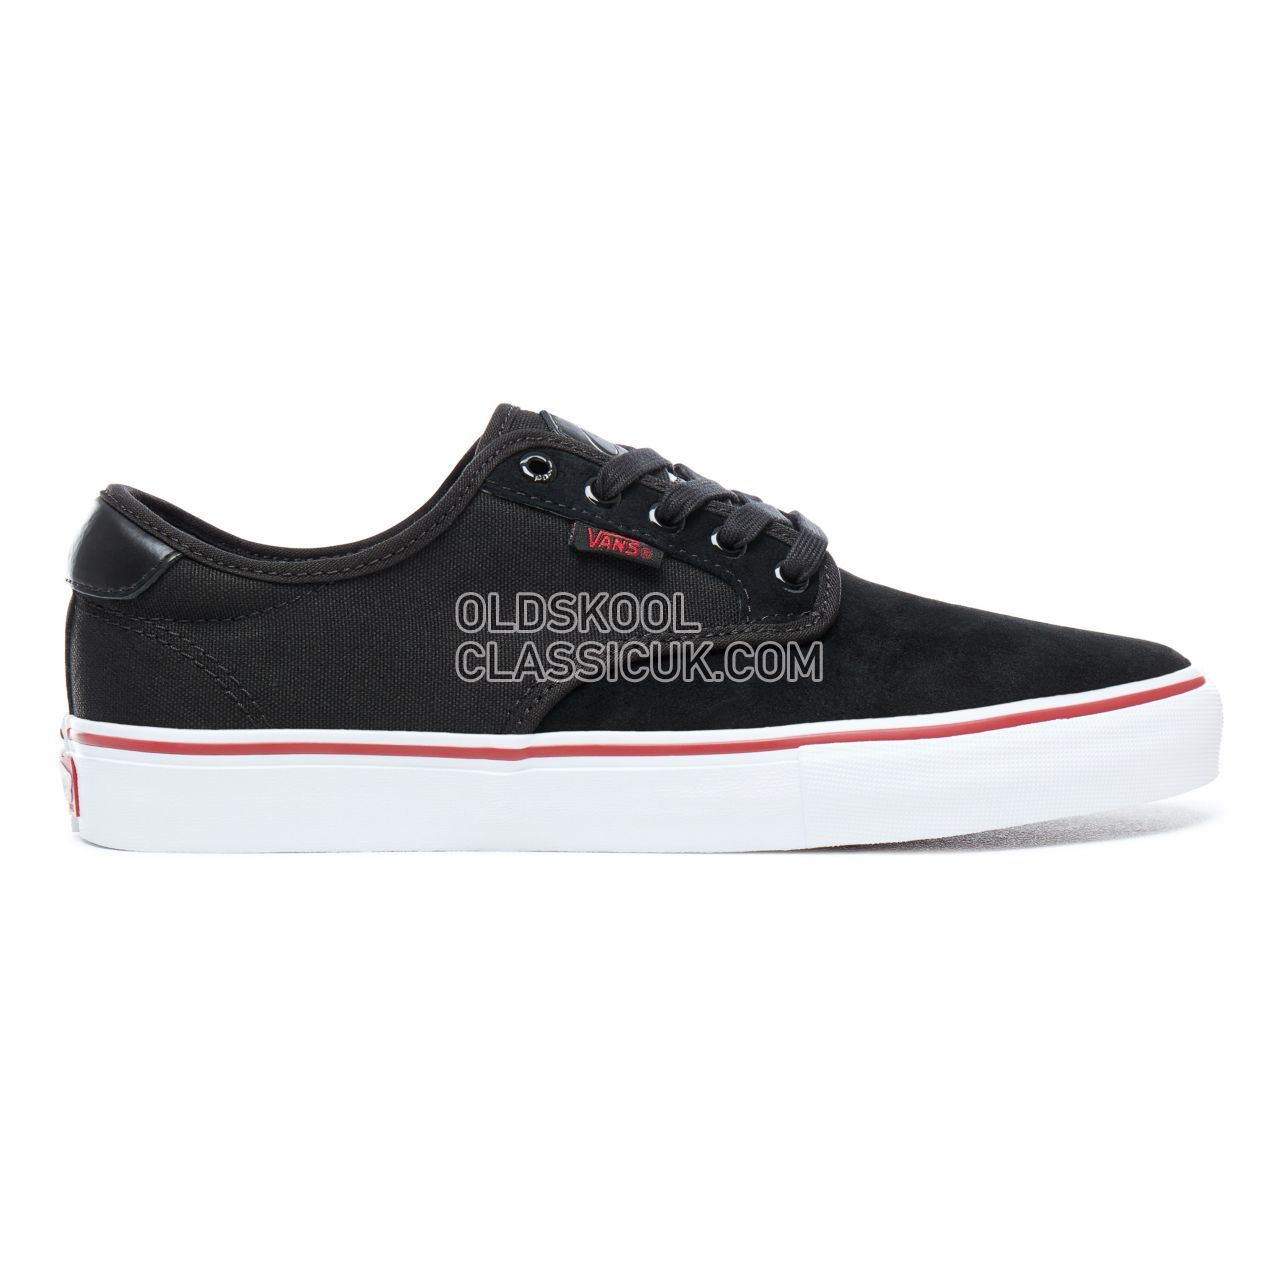 Vans Chima Ferguson Pro Sneakers Mens Black-White-Chili Pepper VA38CFB48 Shoes